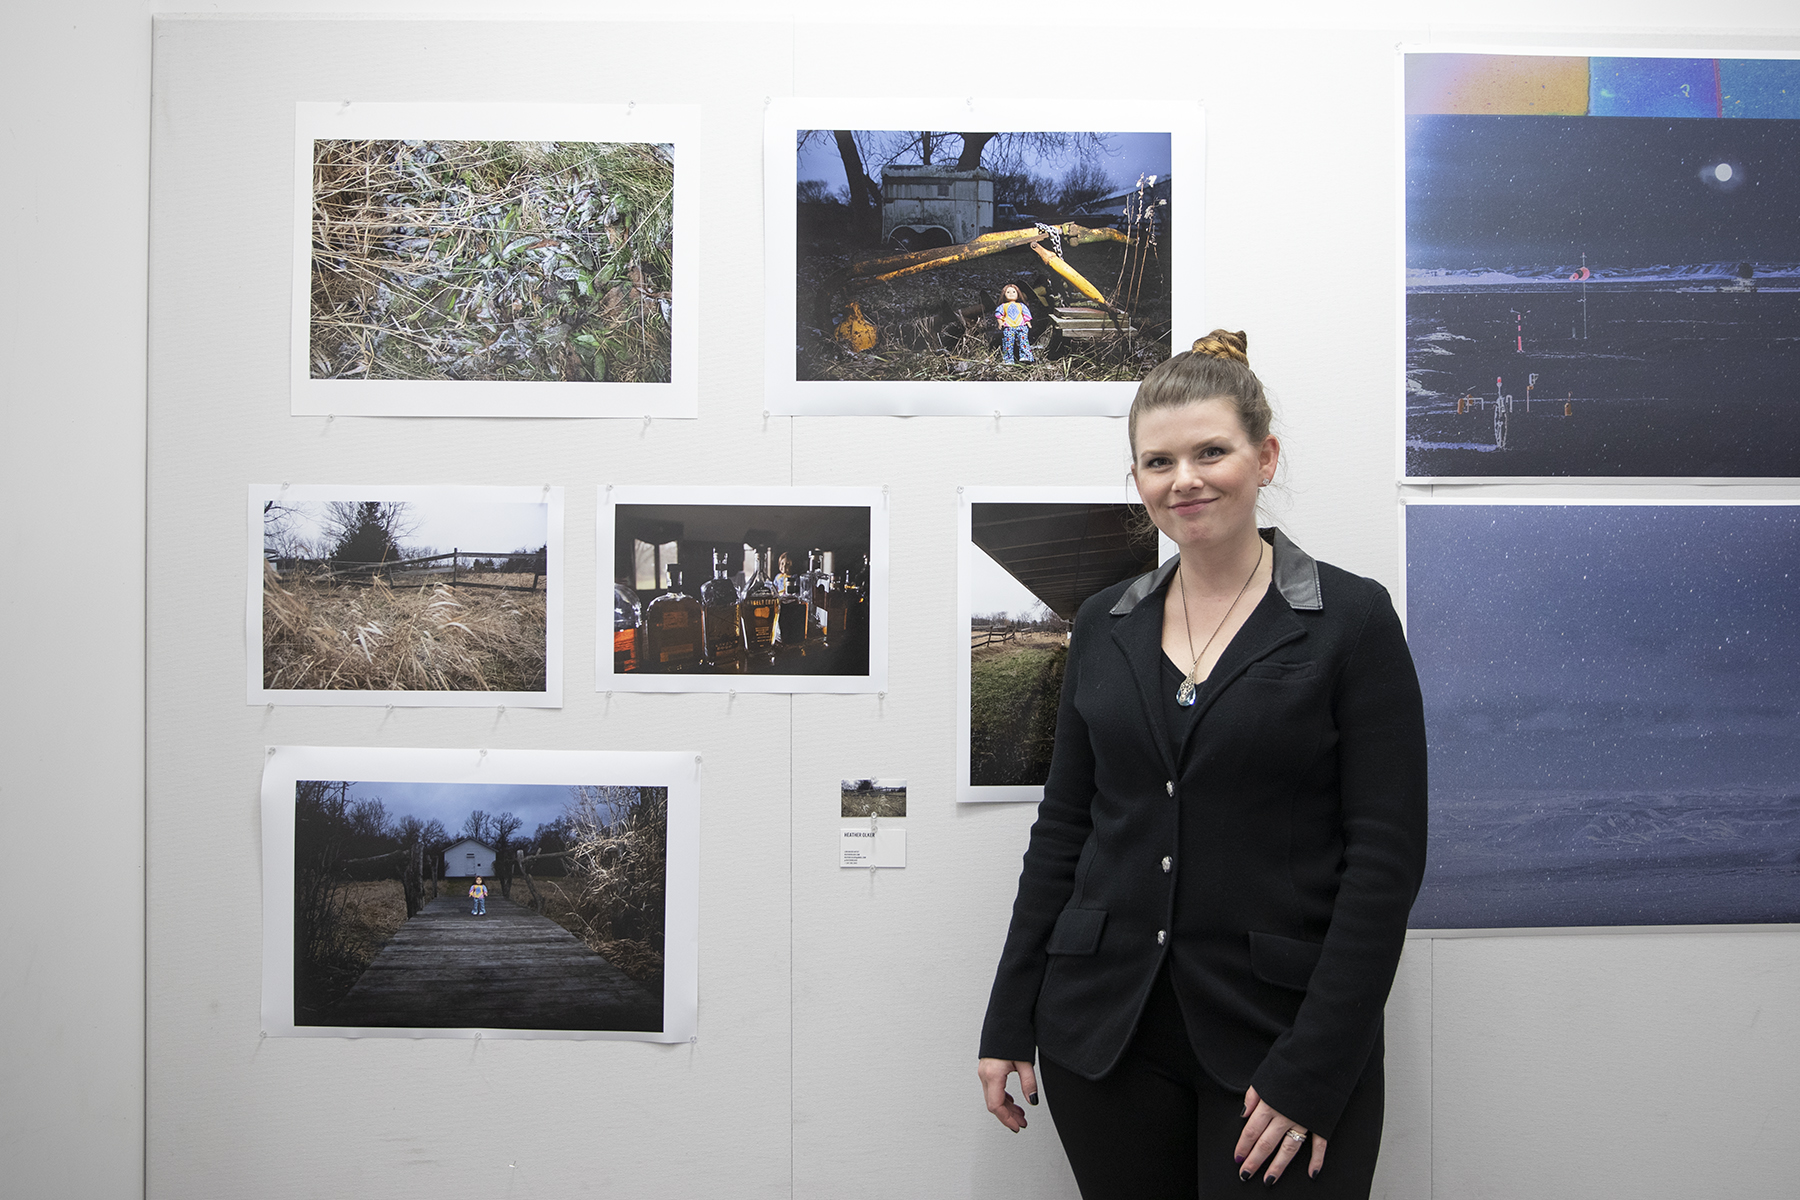 Heather Olker proudly stands with her prints at Salon